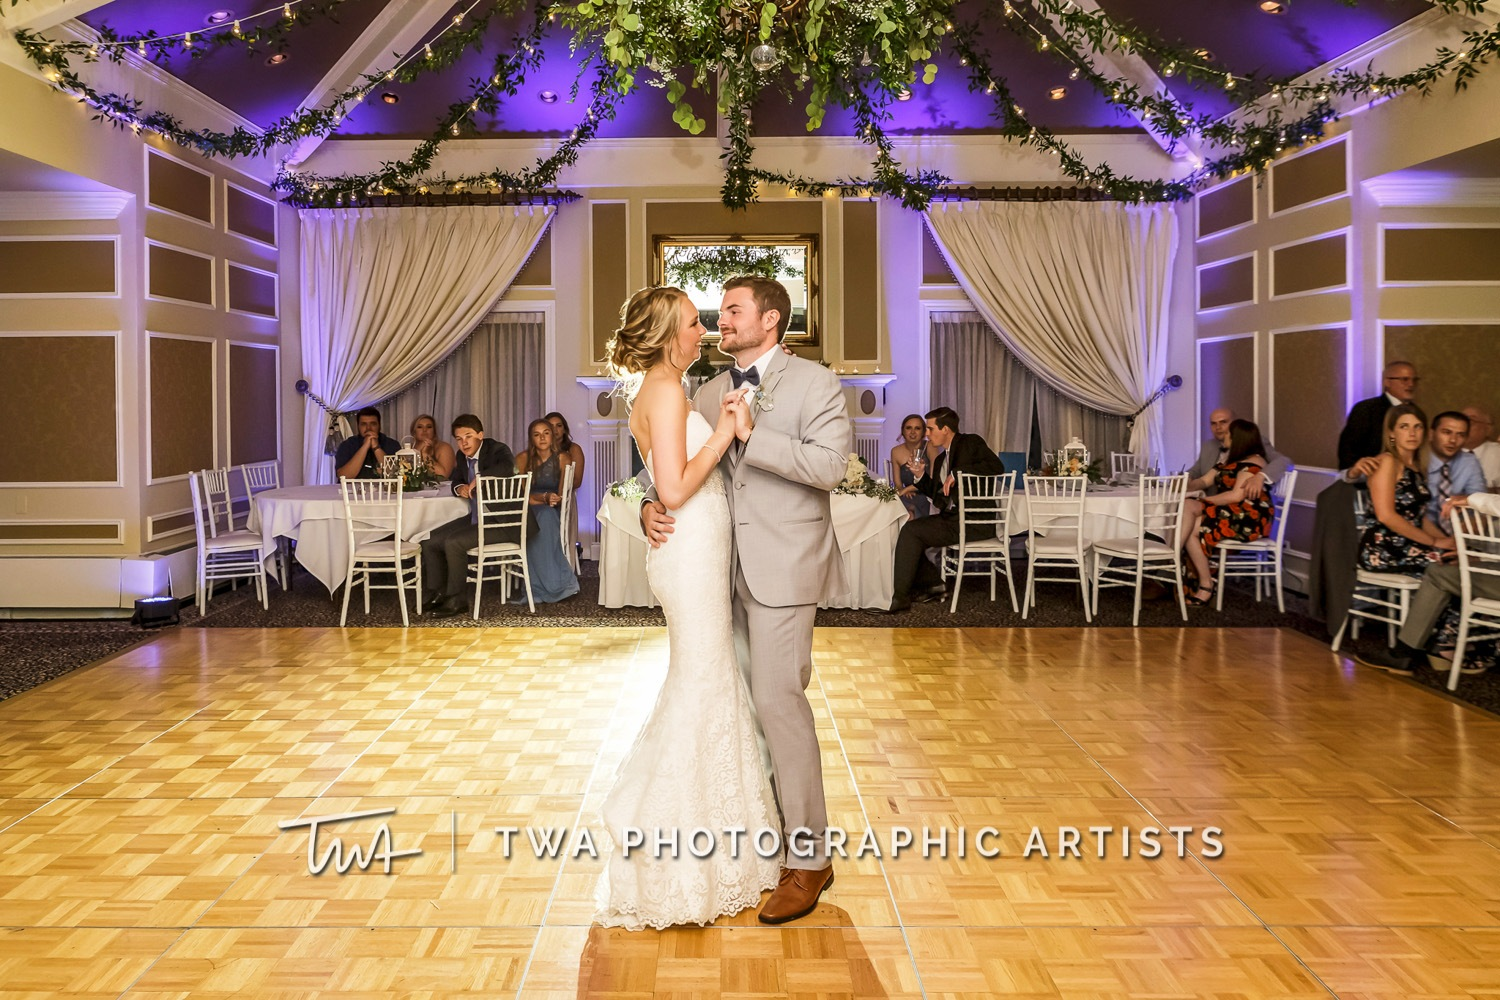 Chicago-Wedding-Photographer-TWA-Photographic-Artists-St.-Charles-CC_Wallschlaeger_Starks_MC_DR-092_1118